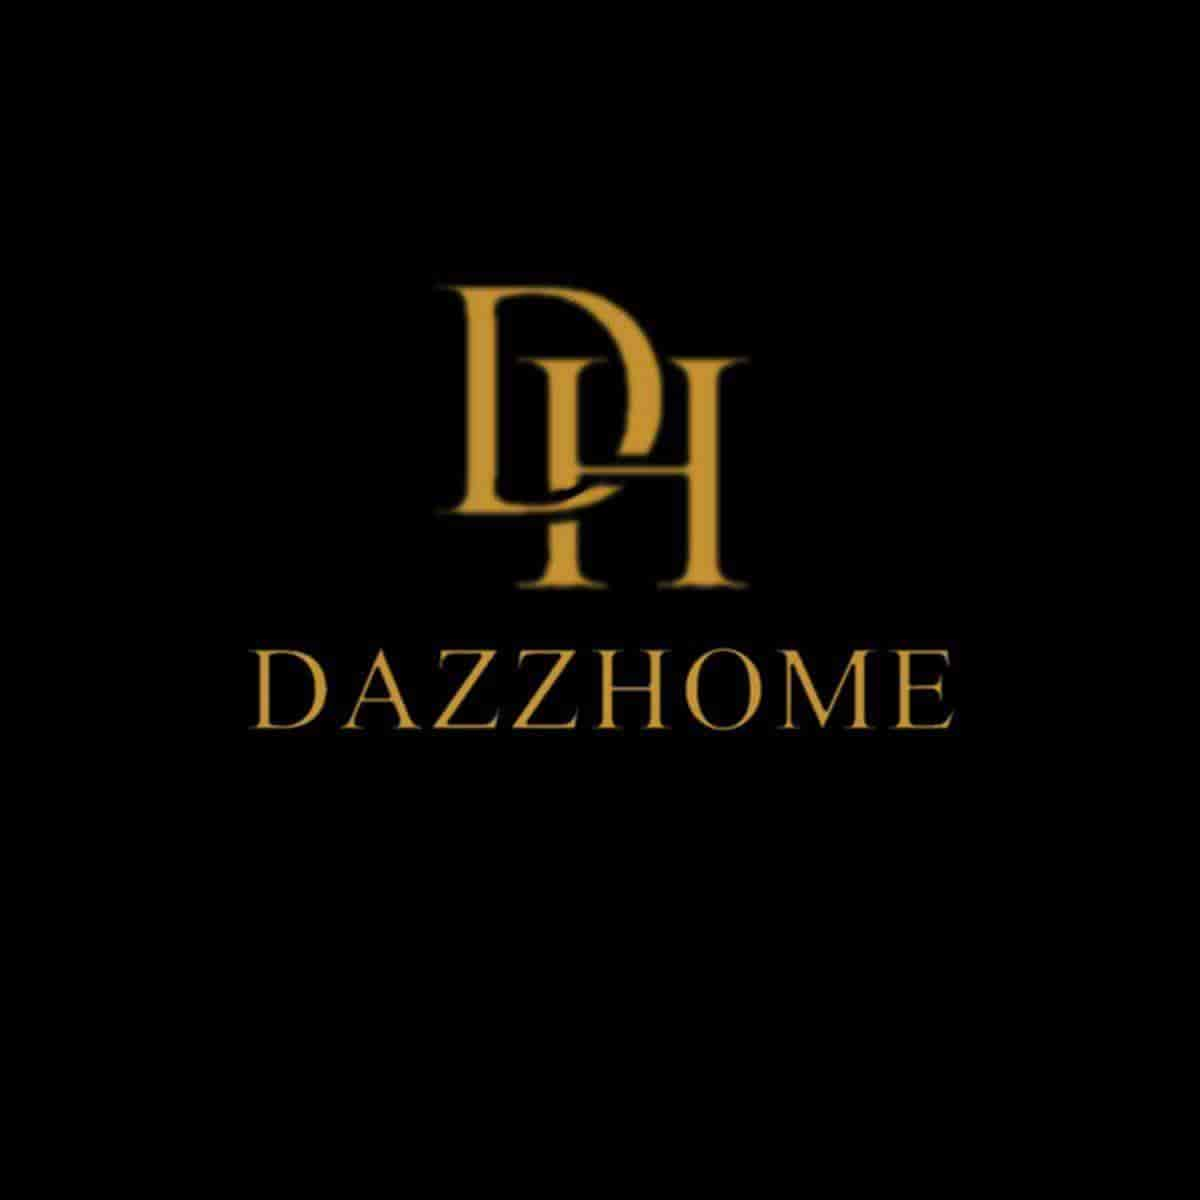 Dazzhome Dwarka Home Decor Manufacturers In Delhi Justdial